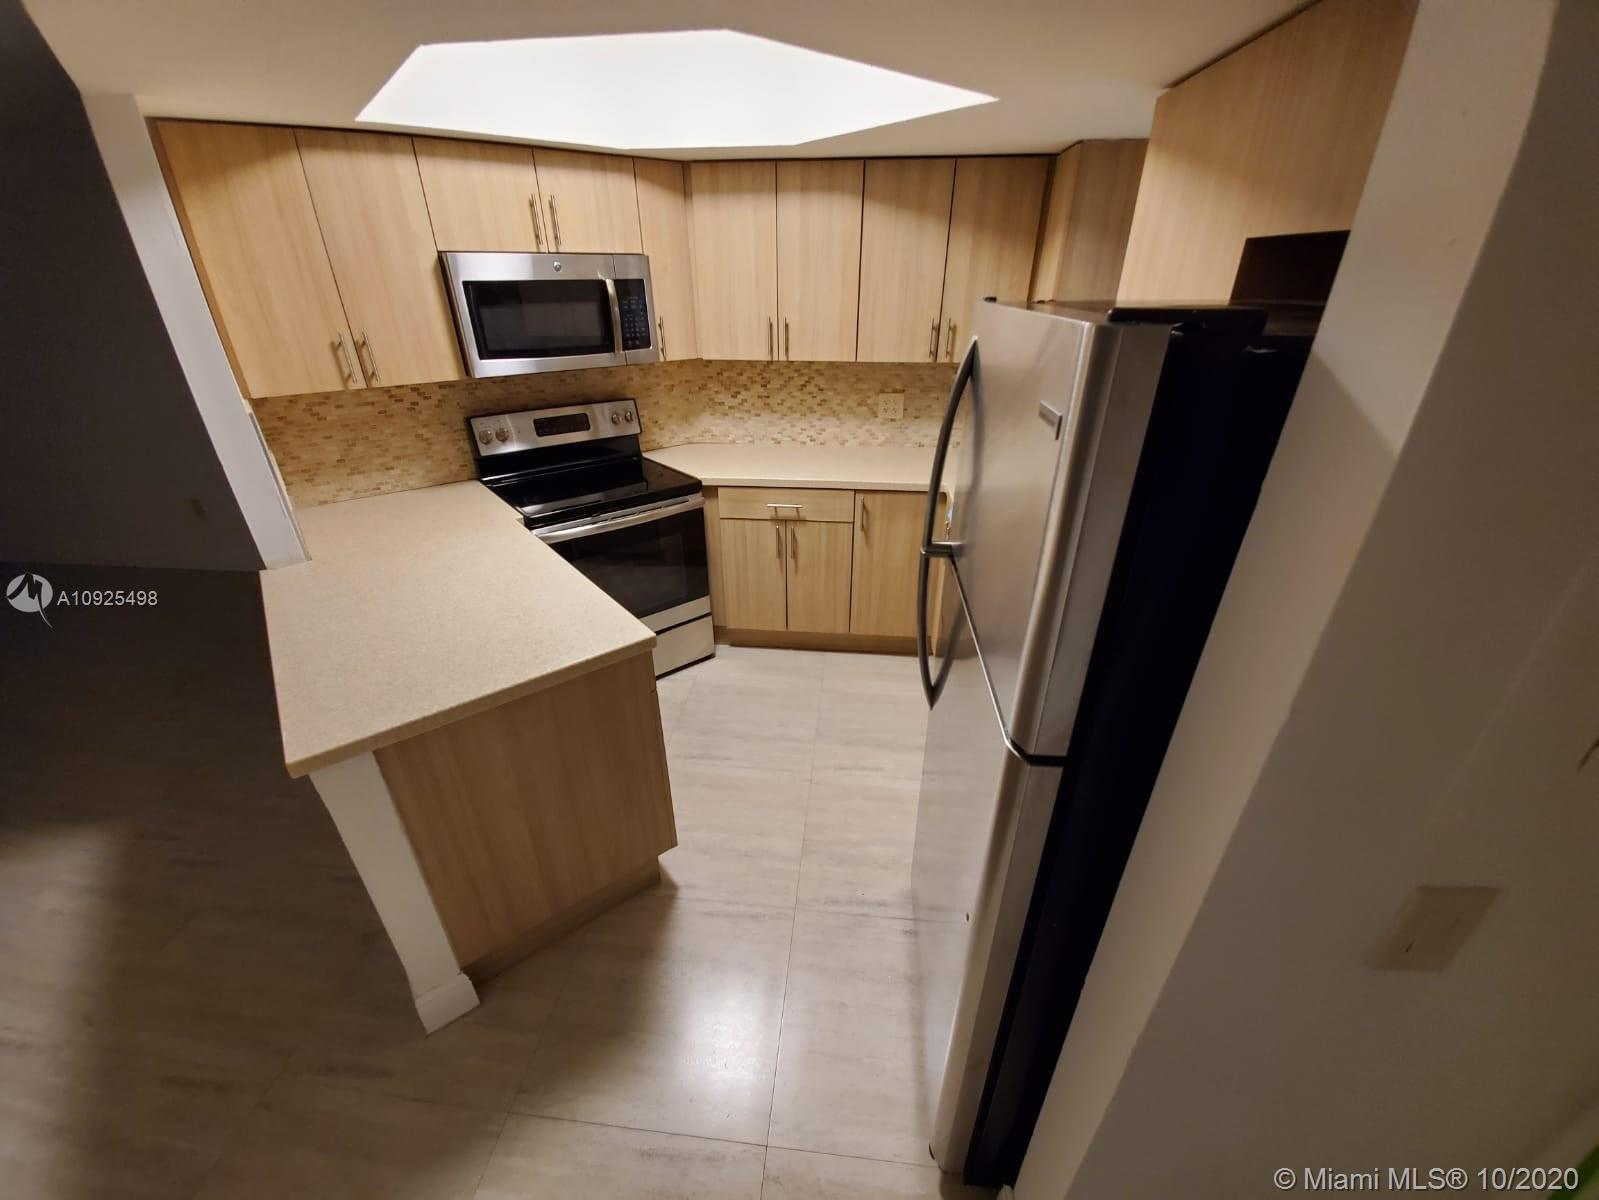 Totally Up Dated. Amenities include 4 pools, gym, tennis and racquetball courts, 24 hour security, up to 2 parking spaces. Centrally located community, walking distance to Downtown Doral, short distance from the airport and main highways. FIRST MONTH and ONE MONTH DEPOSIT!!!